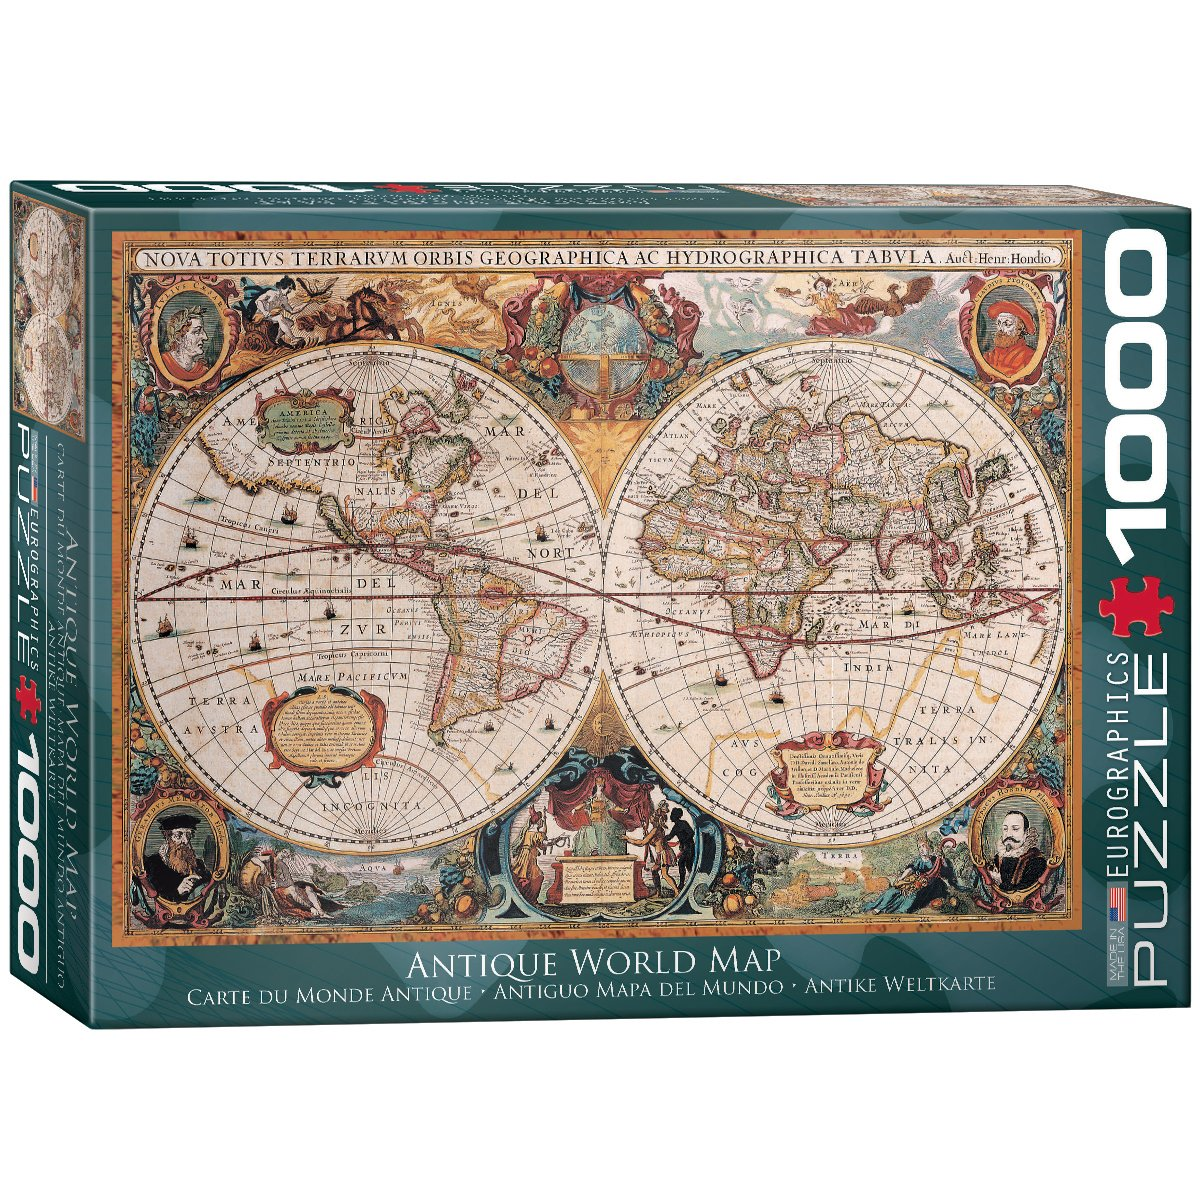 Amazoncom EuroGraphics Antique World Map Puzzle Piece Toys - Antique world map picture